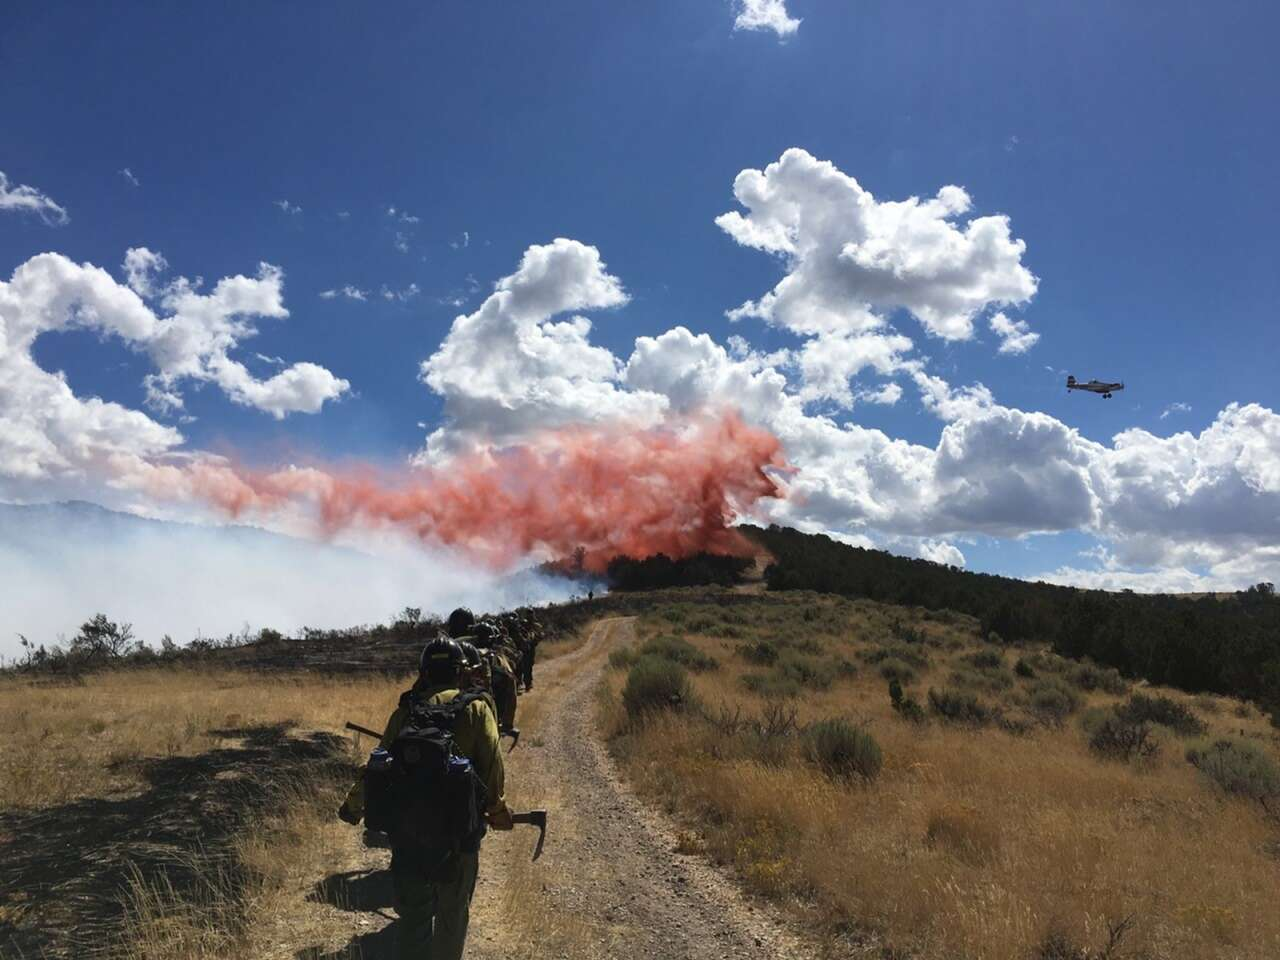 Writers on the Range: What do we owe wildland firefighters?